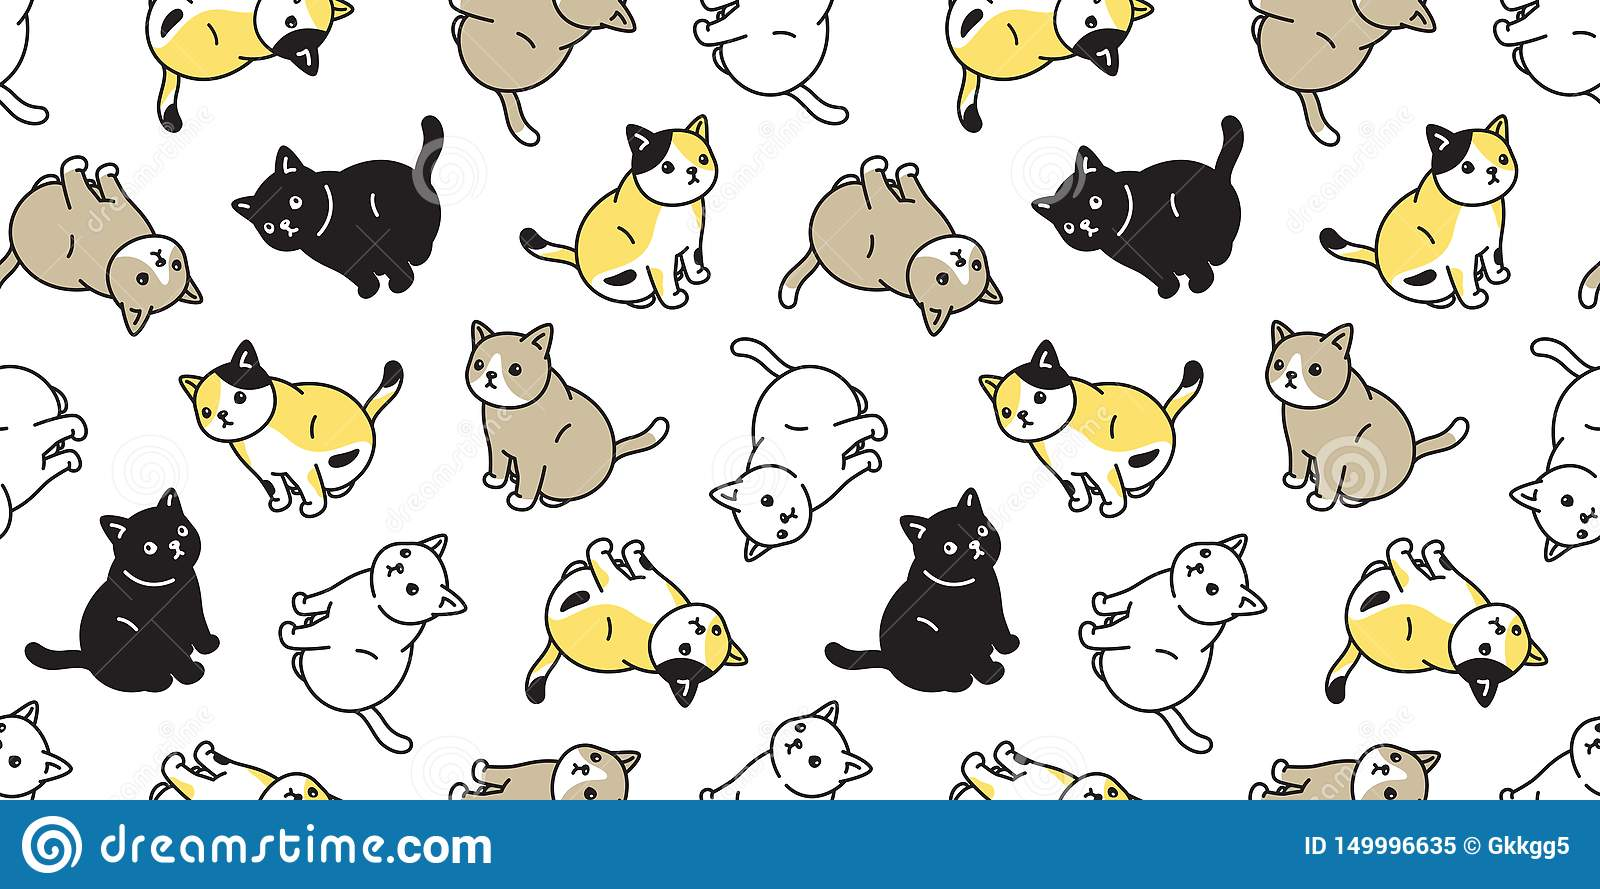 Cat Seamless Pattern Vector Kitten Calico Sitting Cartoon Scarf Isolated Tile Background Repeat Wallpaper Doodle Illustration Stock Illustration Illustration Of Drawing Funny 149996635